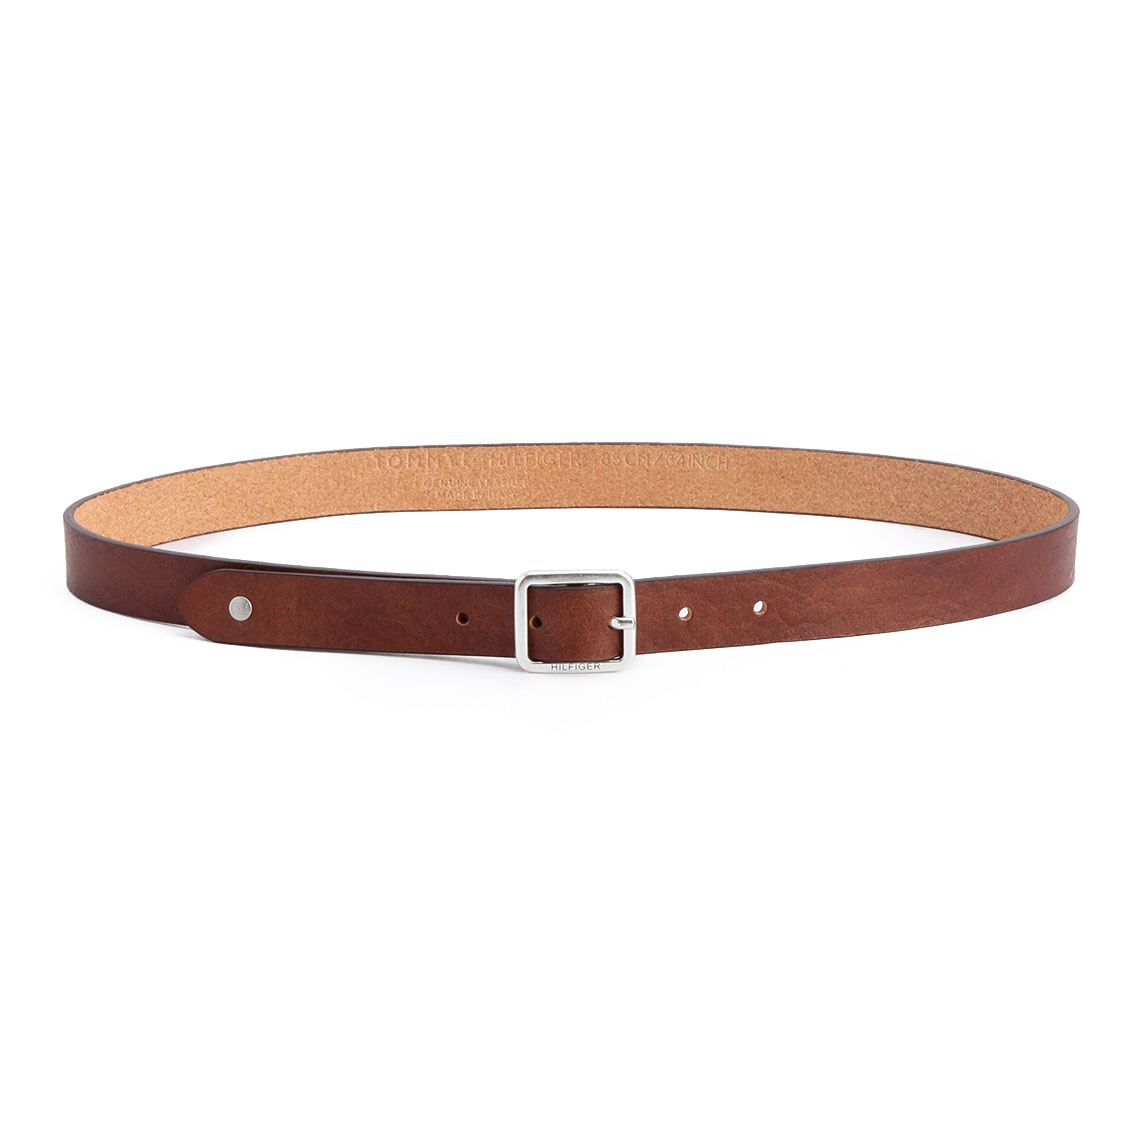 NEW DENTON SLIM BELT